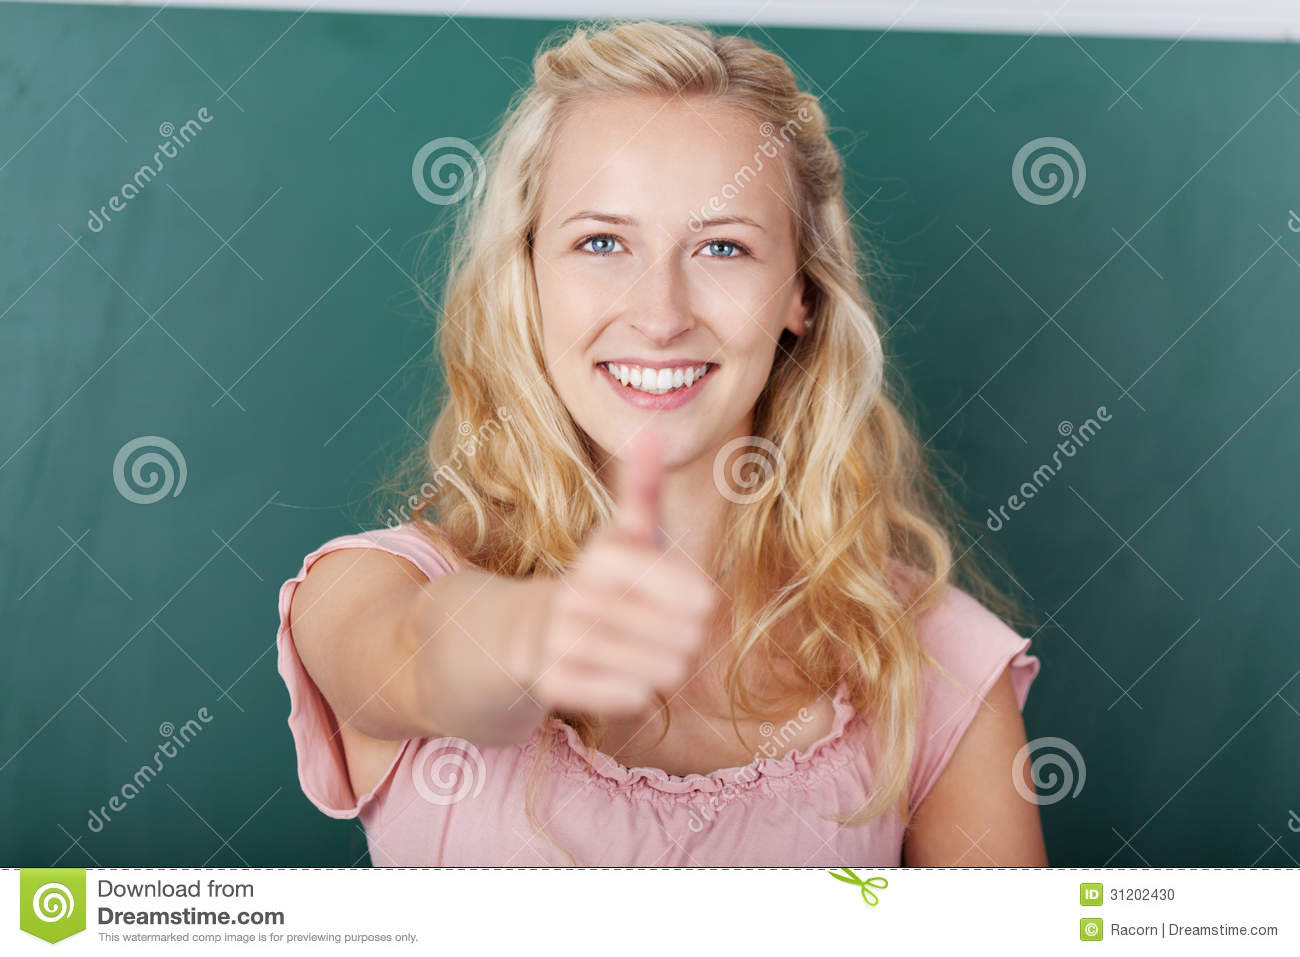 Female STudent Showing Thumbs Up Sign